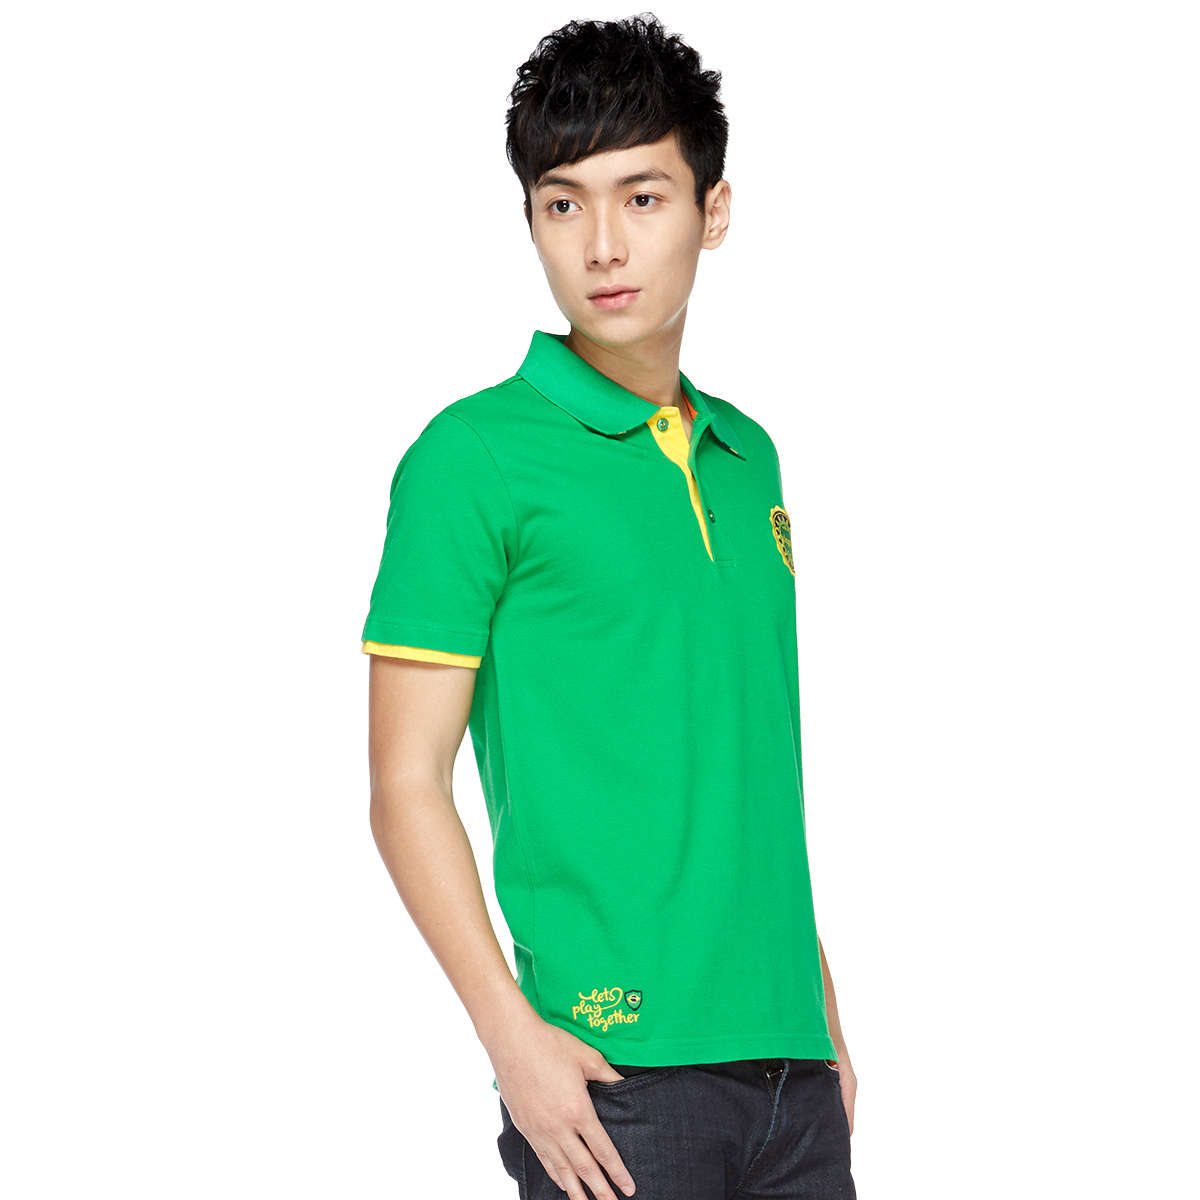 Lets play together (Brazil) Unisex Polo Tee